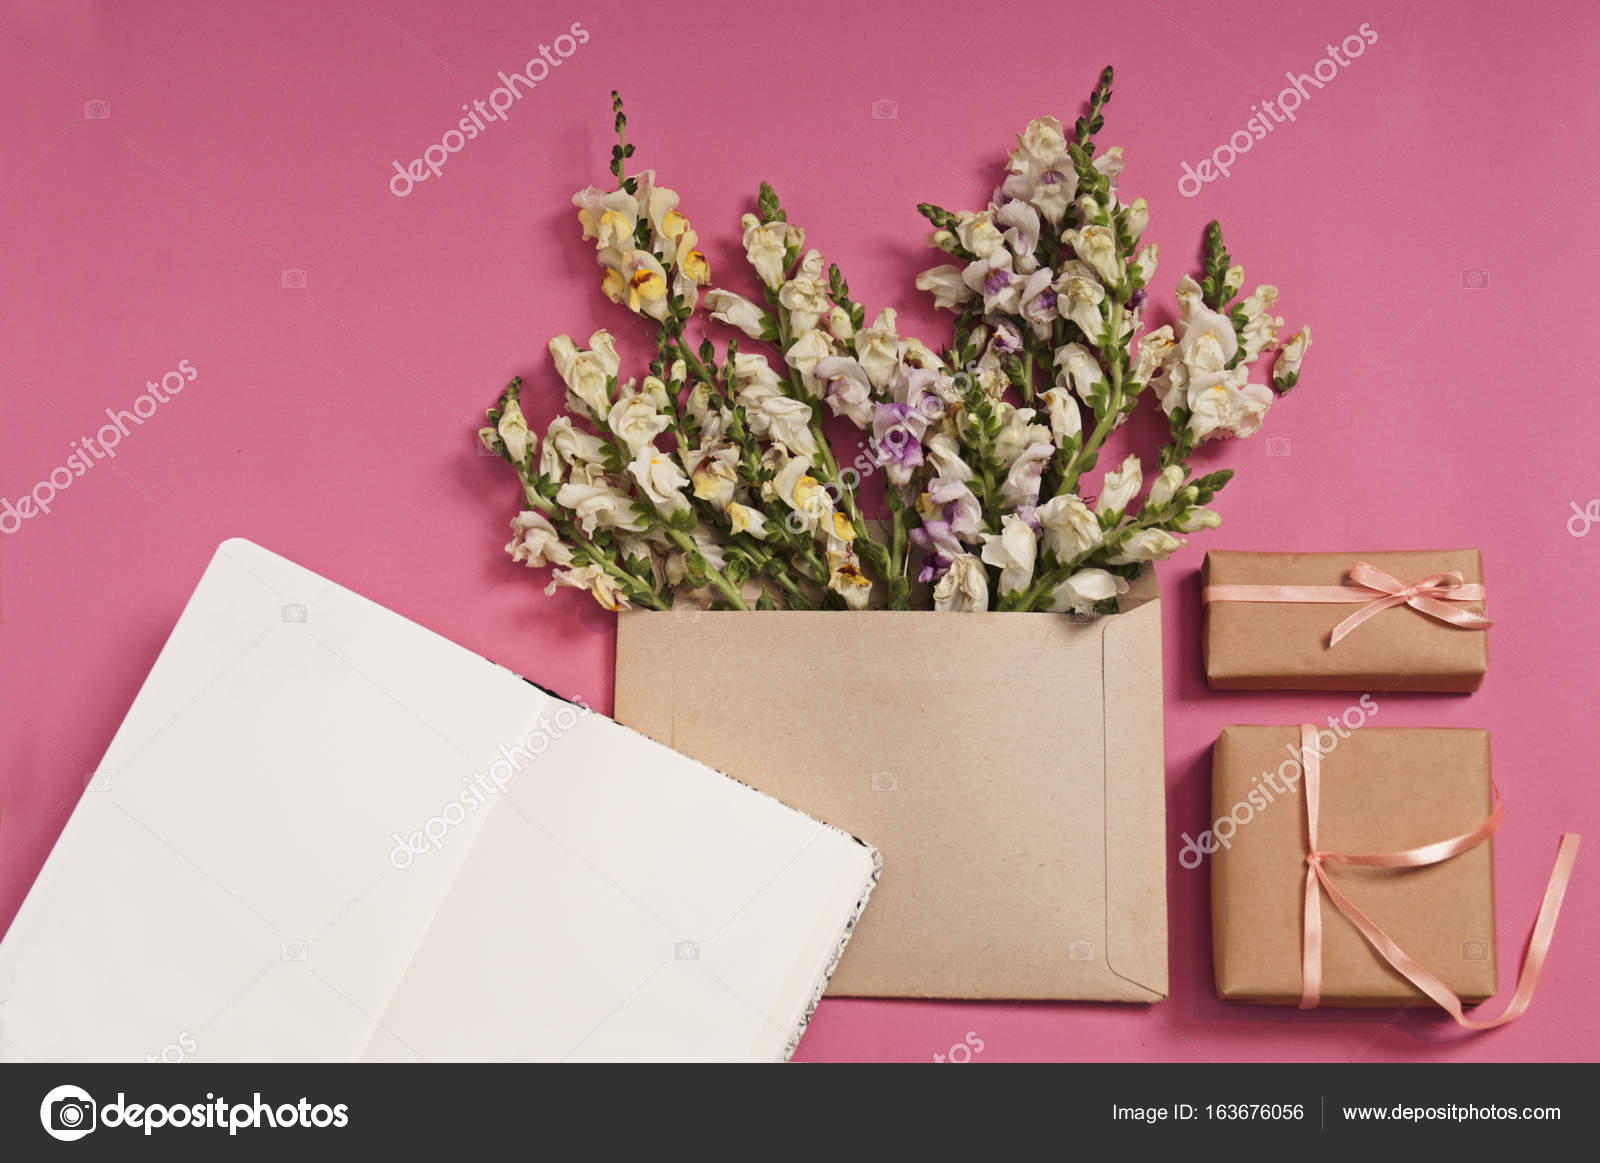 Flowers composition gifts heart shaped flowers envelope pink flowers composition gifts heart shaped flowers envelope pink background flat stock photo mightylinksfo